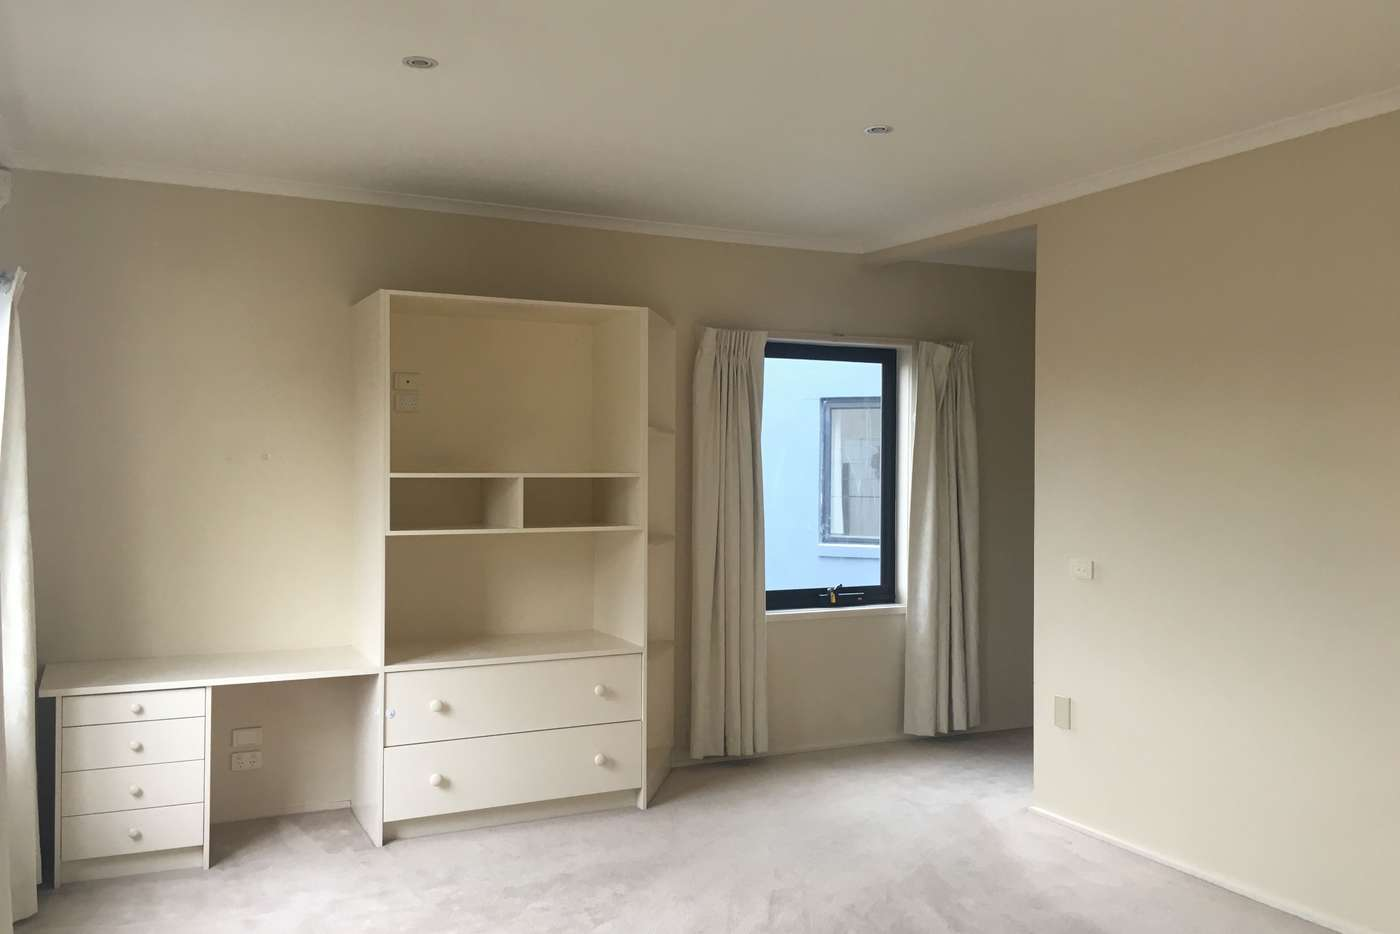 Seventh view of Homely apartment listing, 1A Chesterville Road, Cheltenham VIC 3192